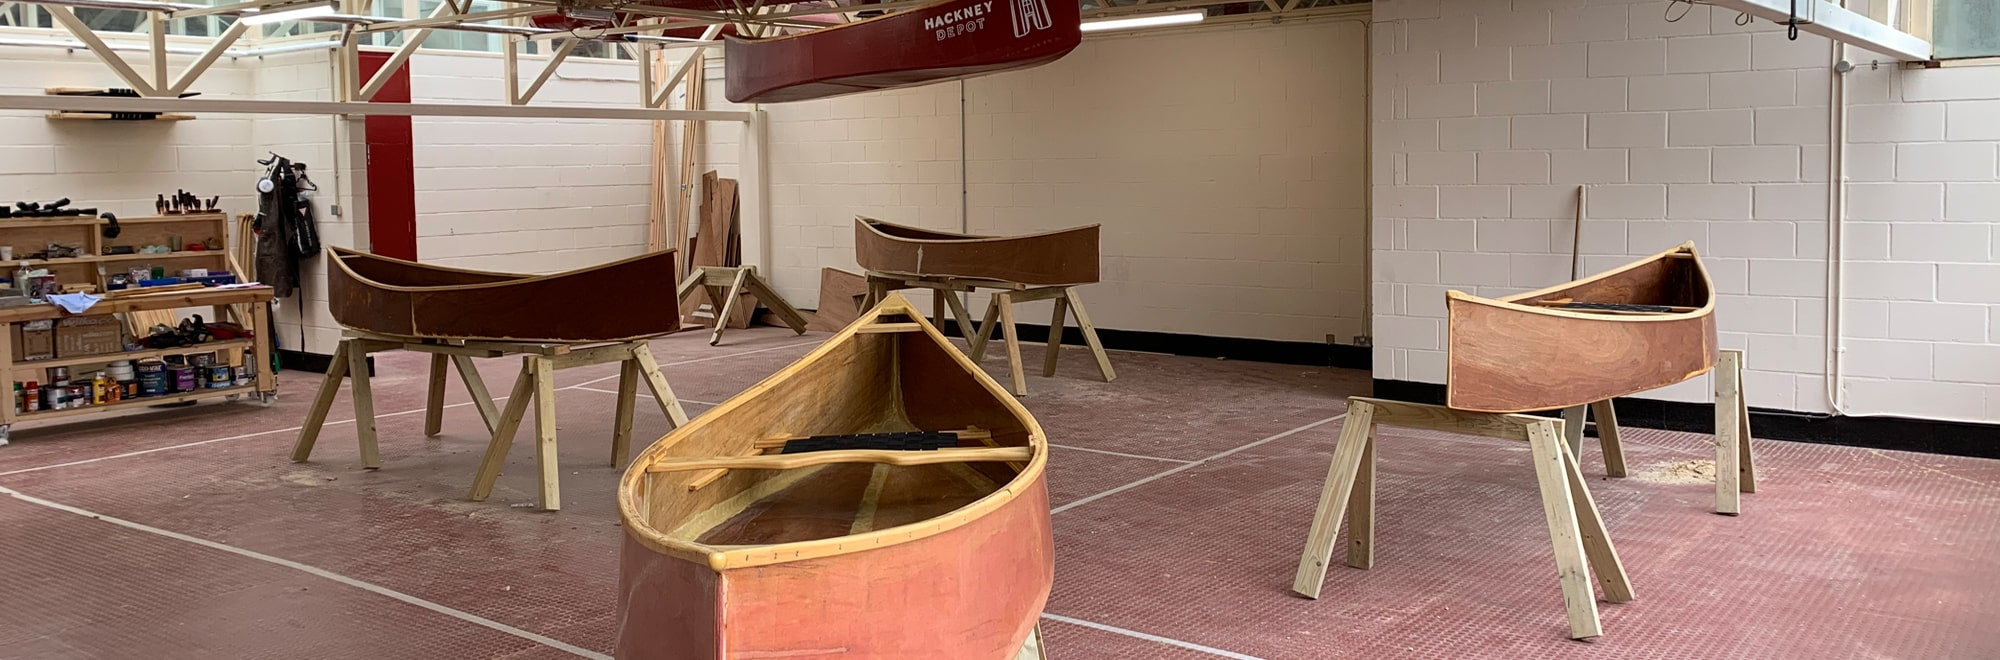 Canoes Built